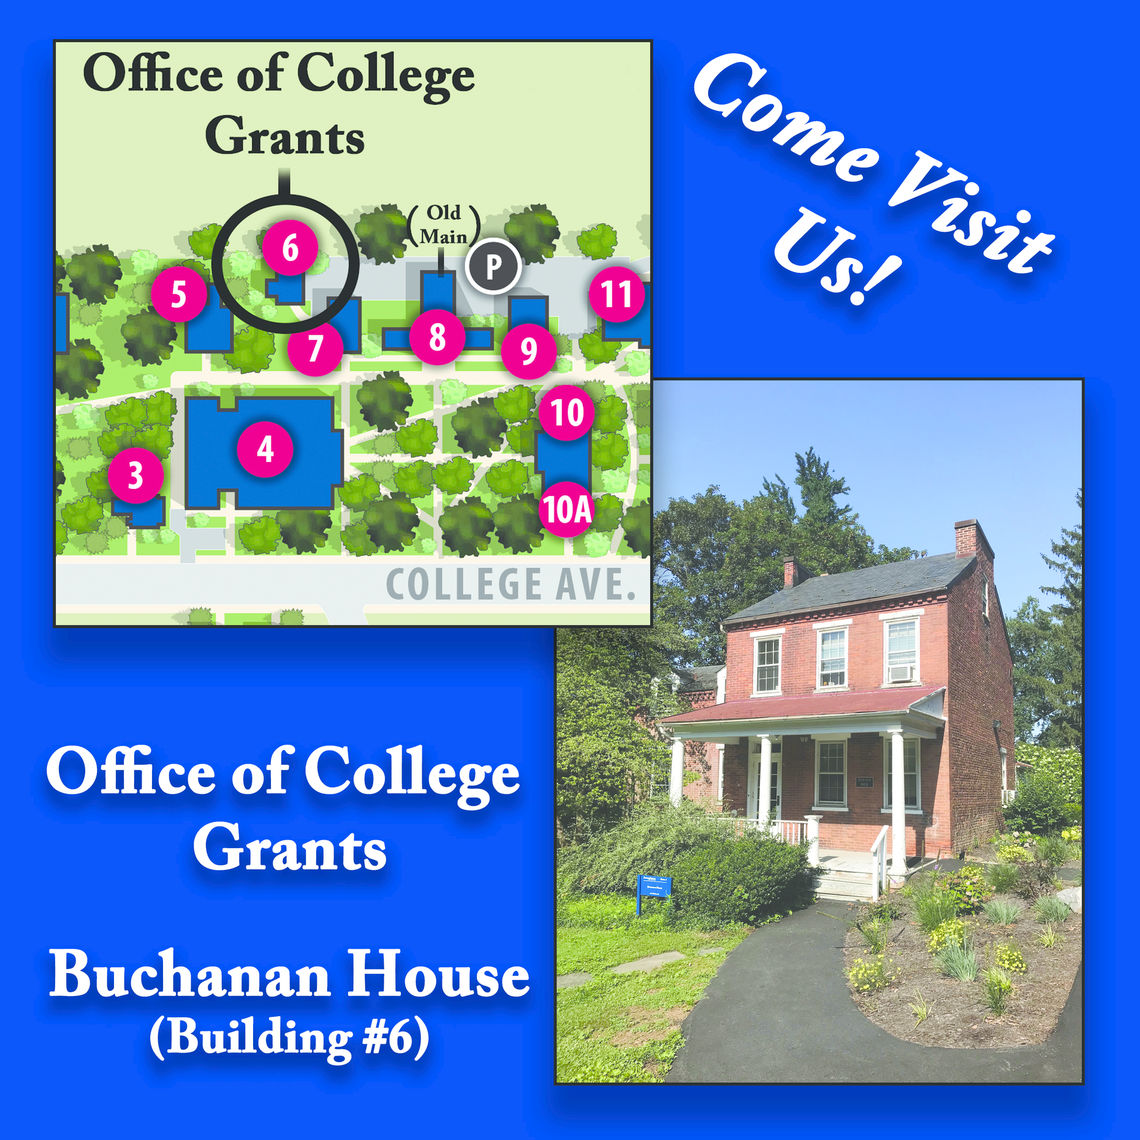 Office of Collge Grants Location